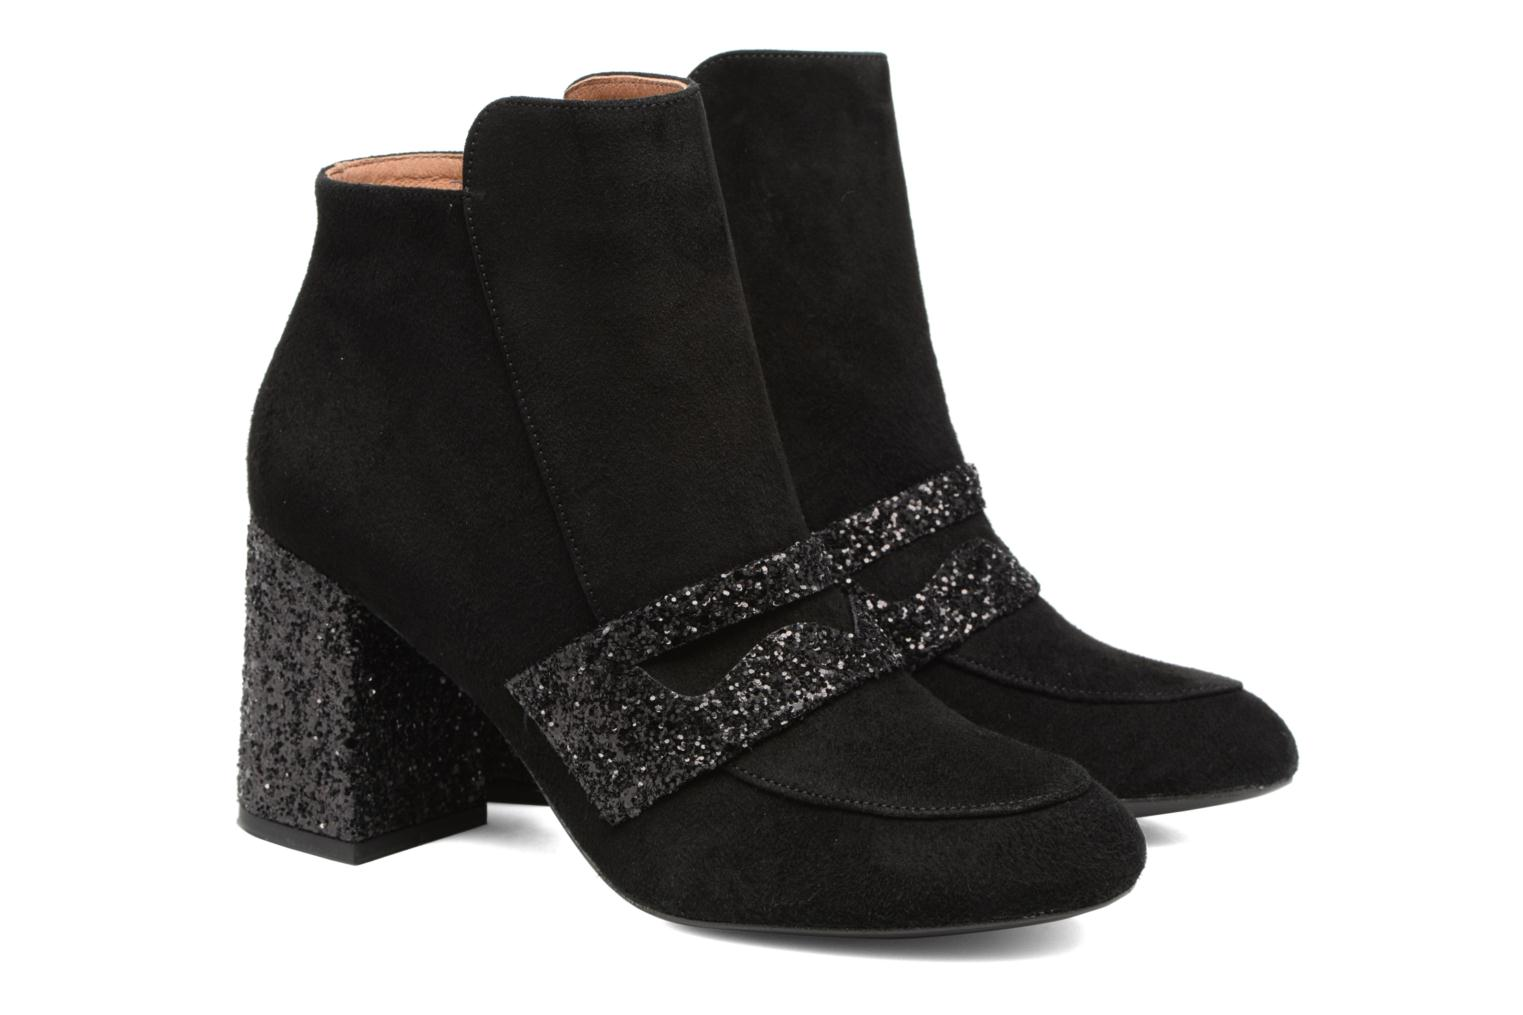 Winter Freak #2 Cuir Velours Noir + Glitter Noir